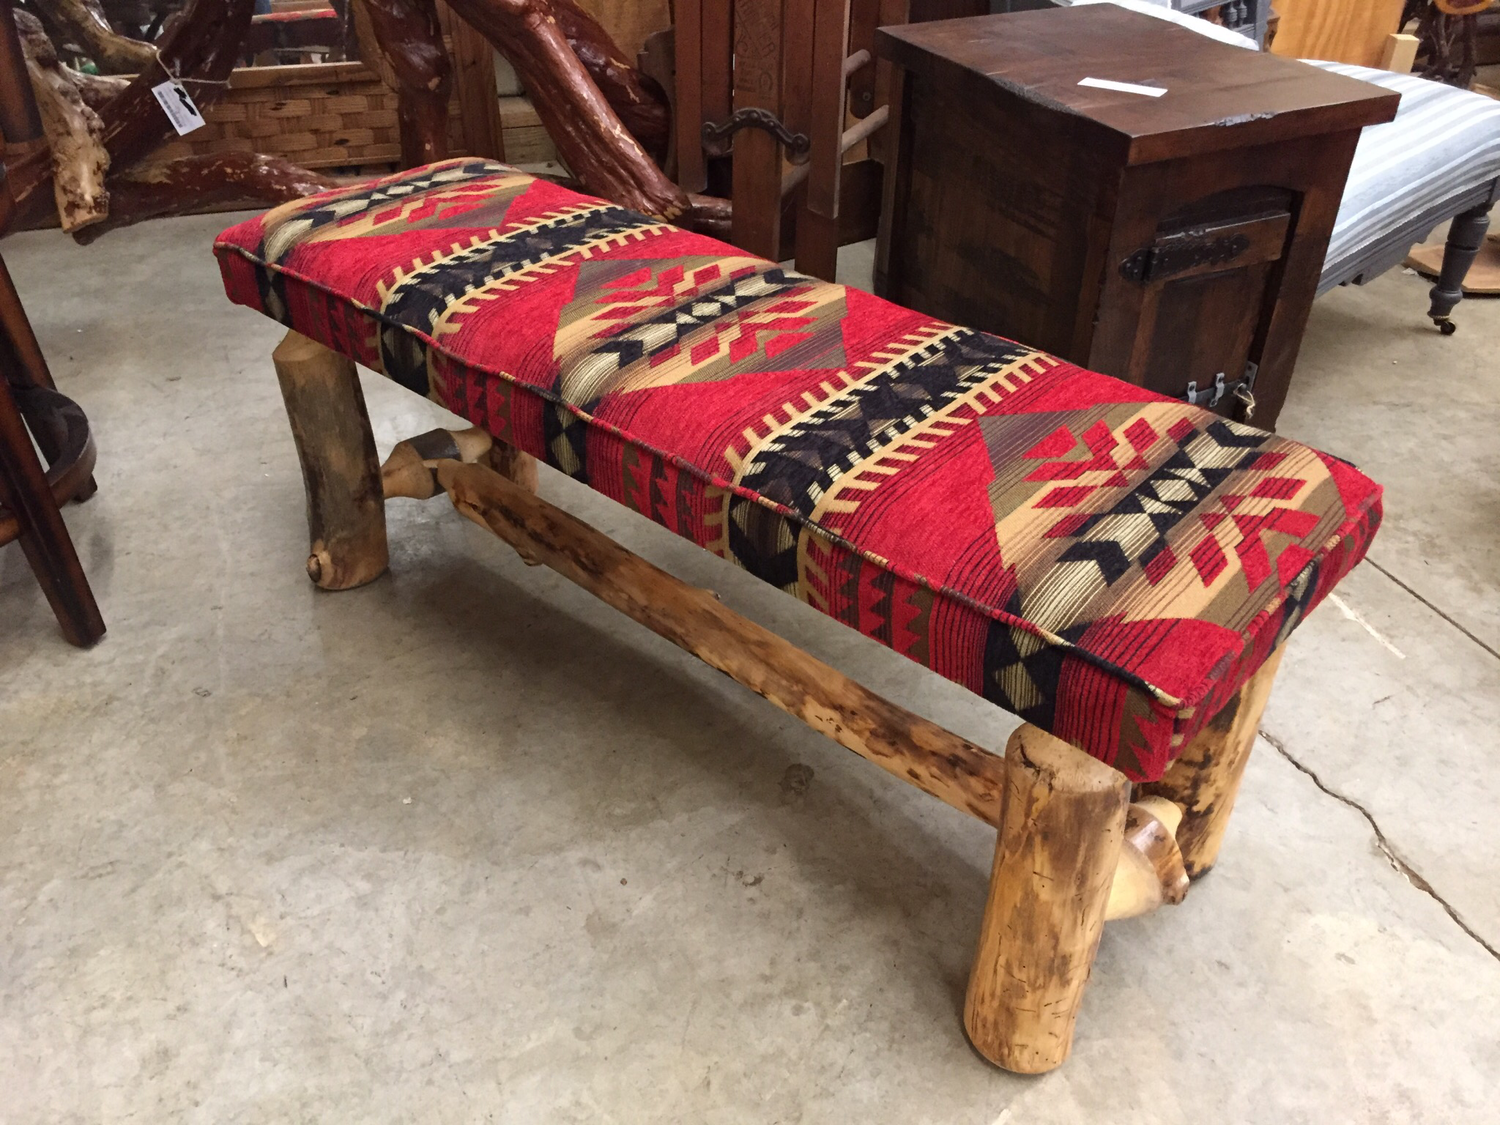 4' Bench with Upholstered Seat